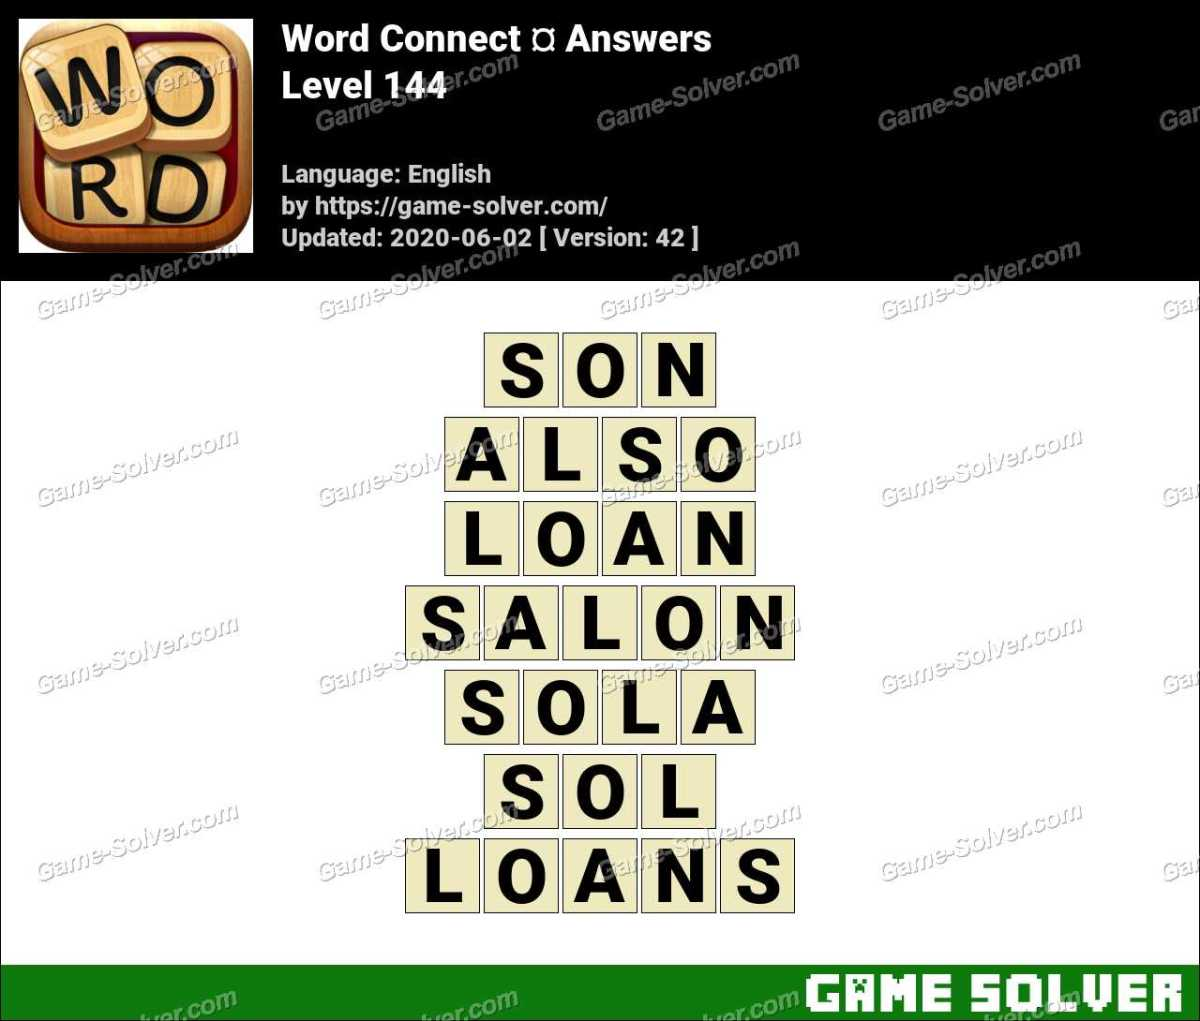 Word Connect Level 144 Answers